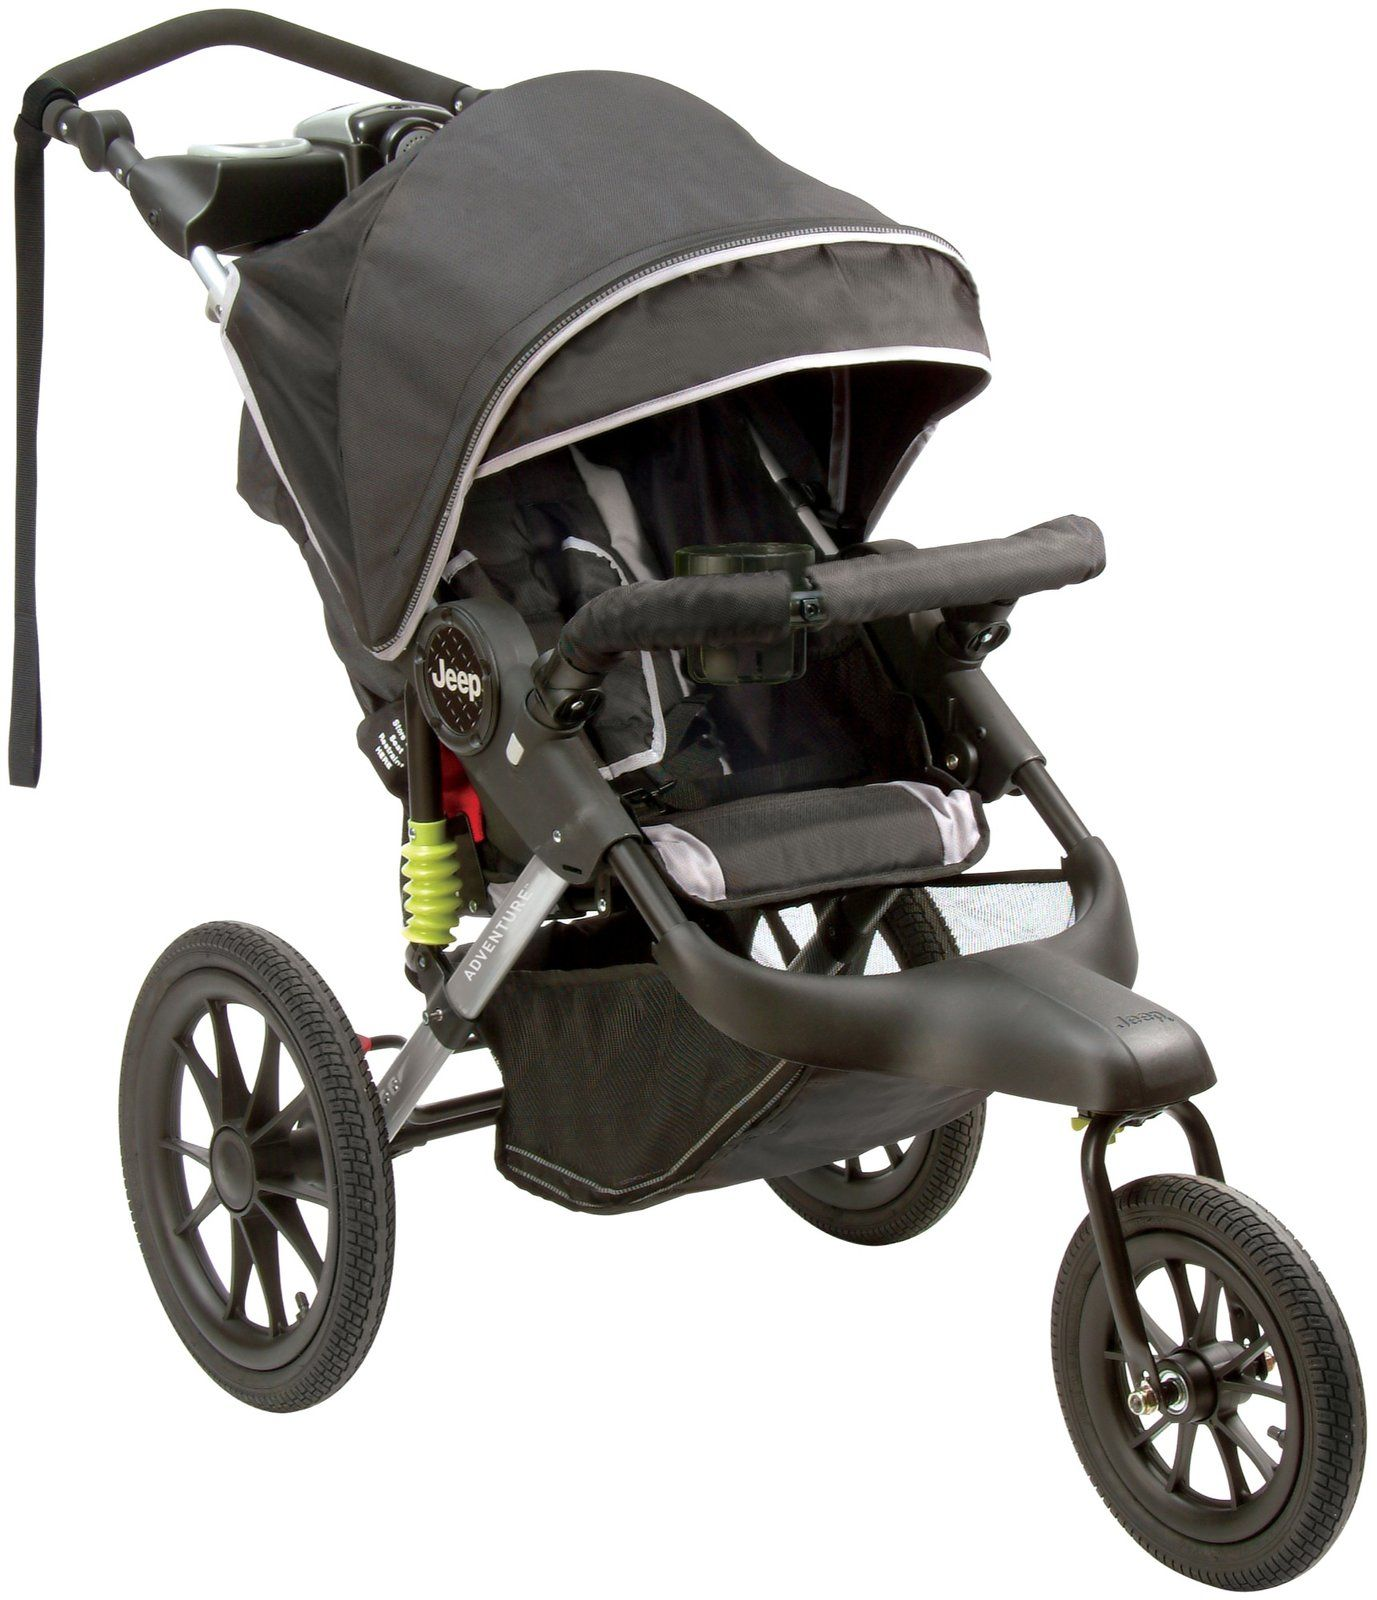 Jeep Adventure Jogging Stroller 212 29 Jeep Finally Came Out With New Jogging Strollers And They Have A Locking F Jogging Stroller Jogger Stroller Stroller